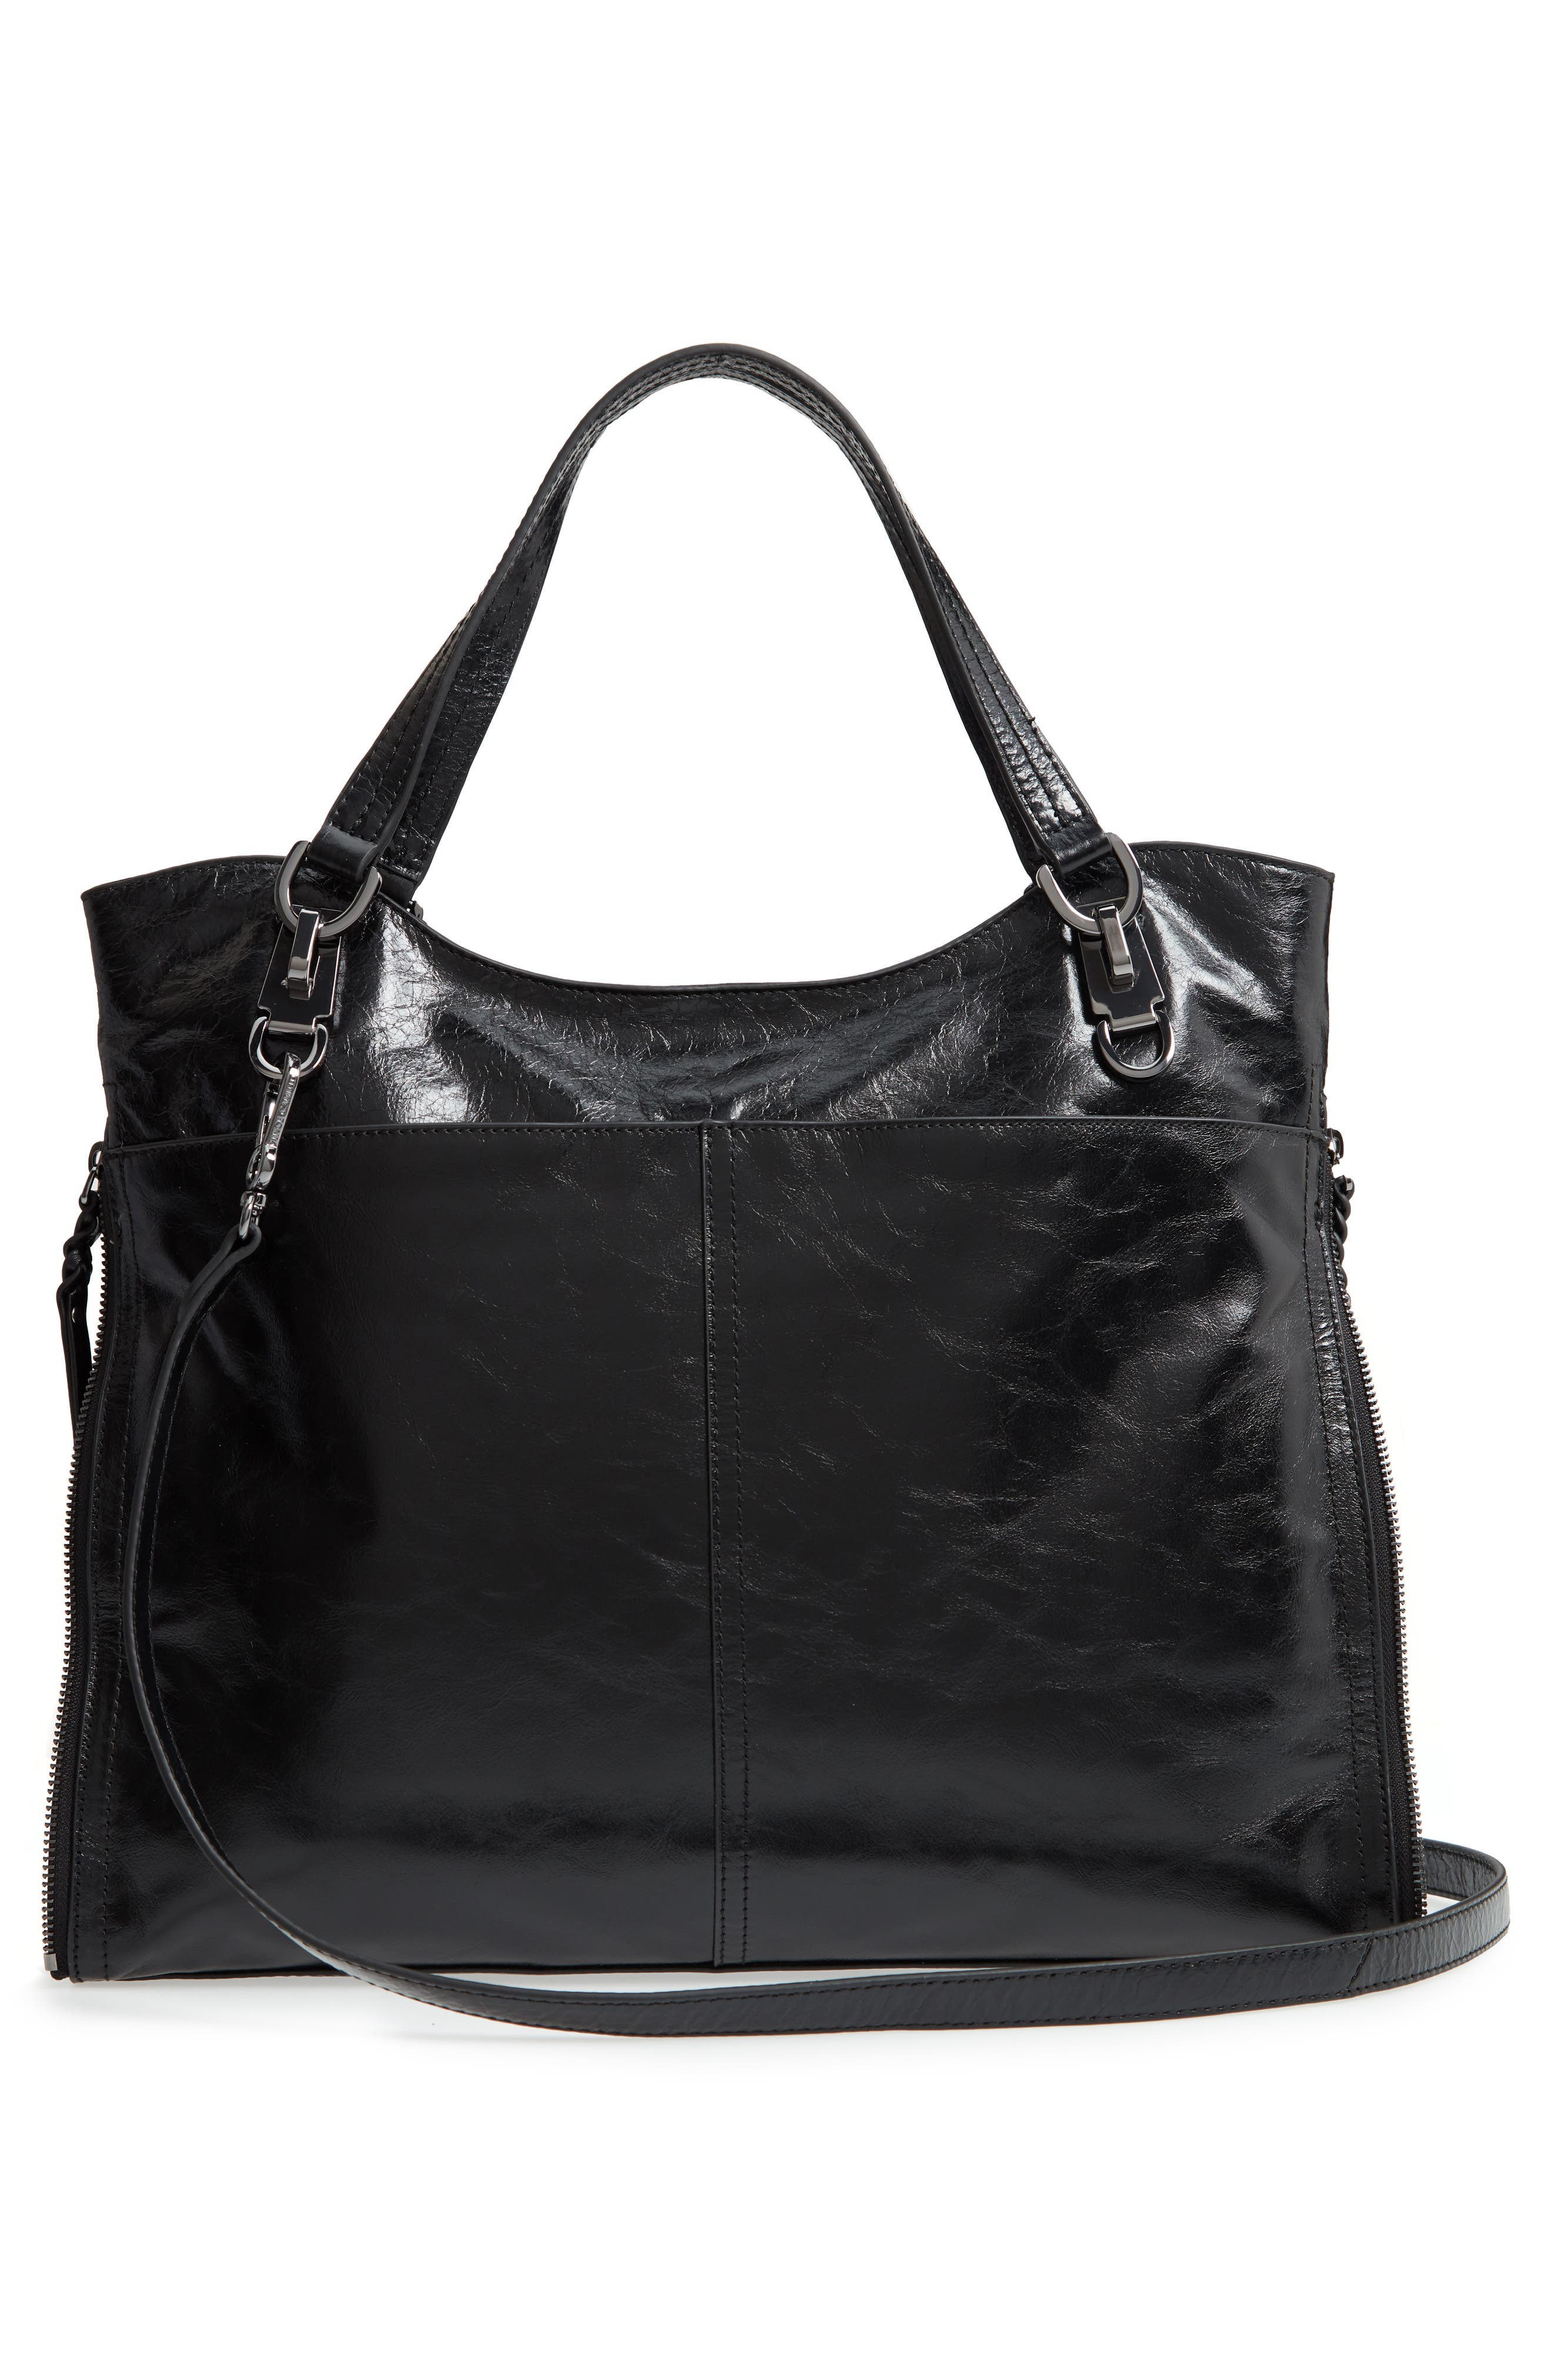 VINCE CAMUTO,                             Narra Leather Tote,                             Alternate thumbnail 3, color,                             002